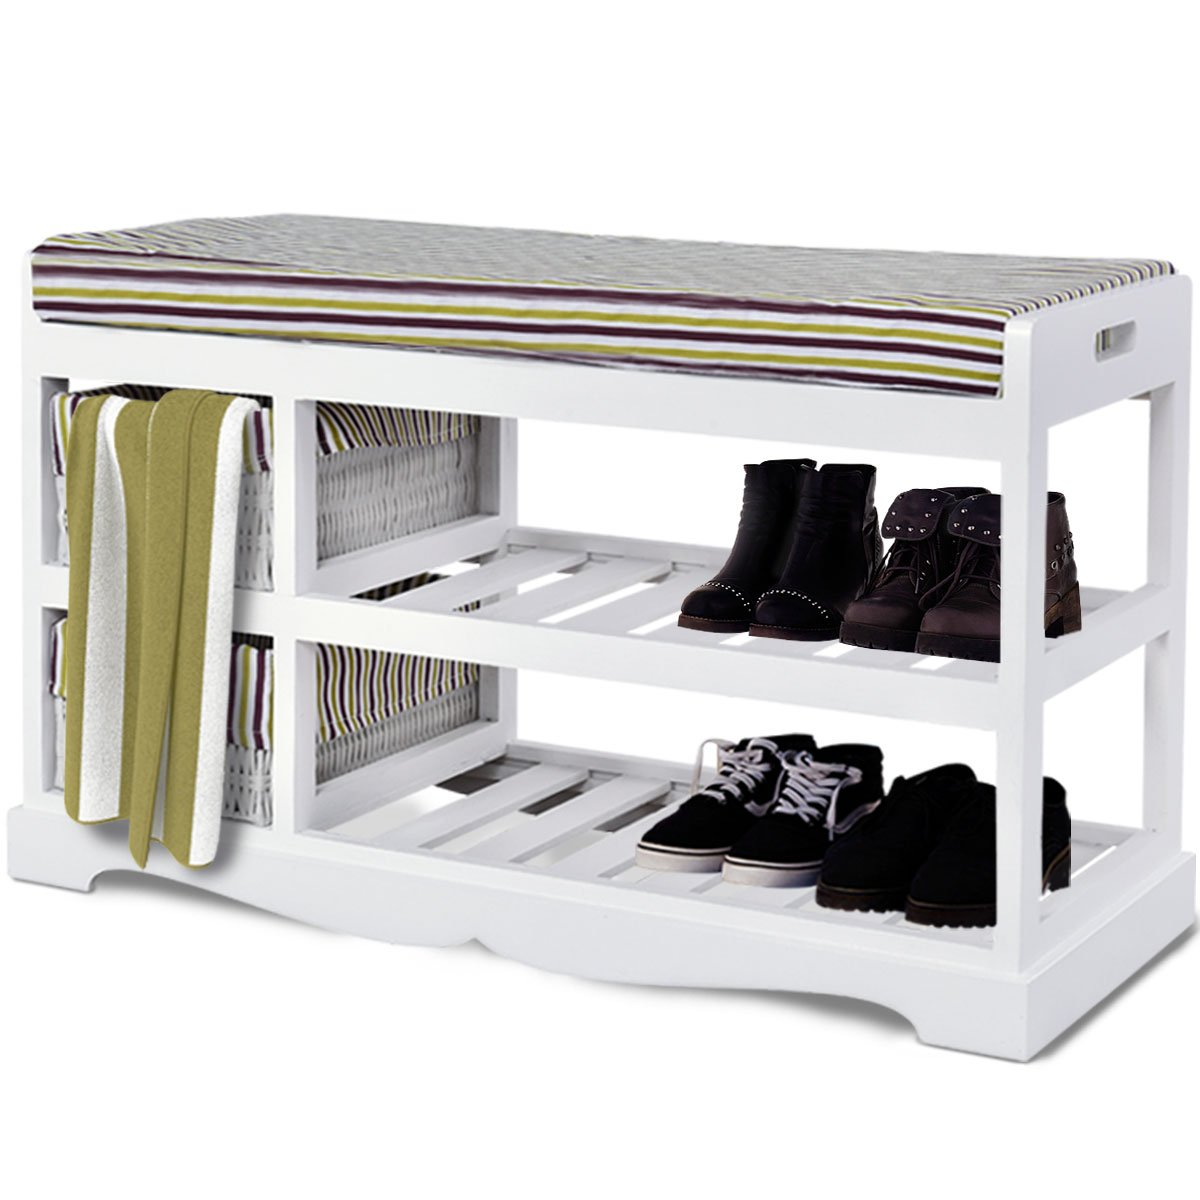 Giantex Shoe Bench Rack with Upholstered Padded Seat Storage Shelf Origanizer Bench with 2 Baskets for Bedroom Entryway Living Room (White)